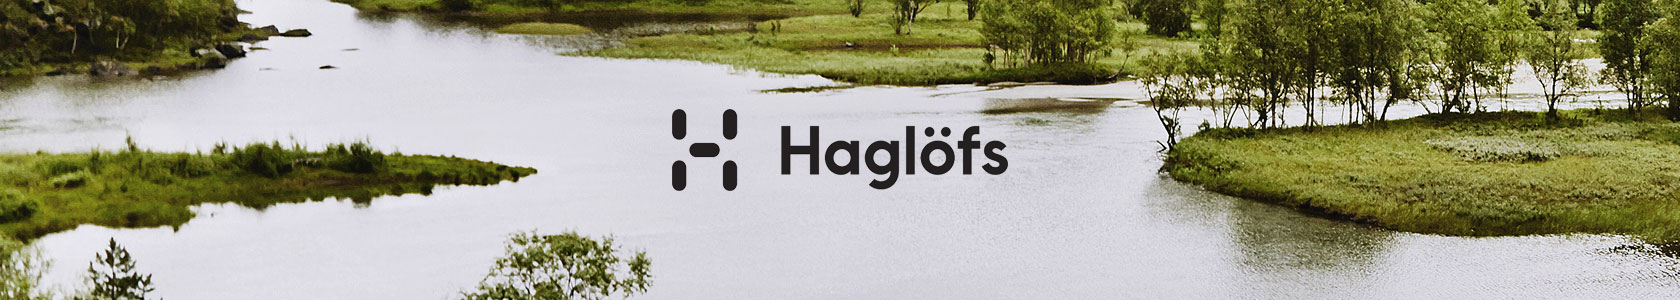 An image of a lake with the haglofs logo in the centre